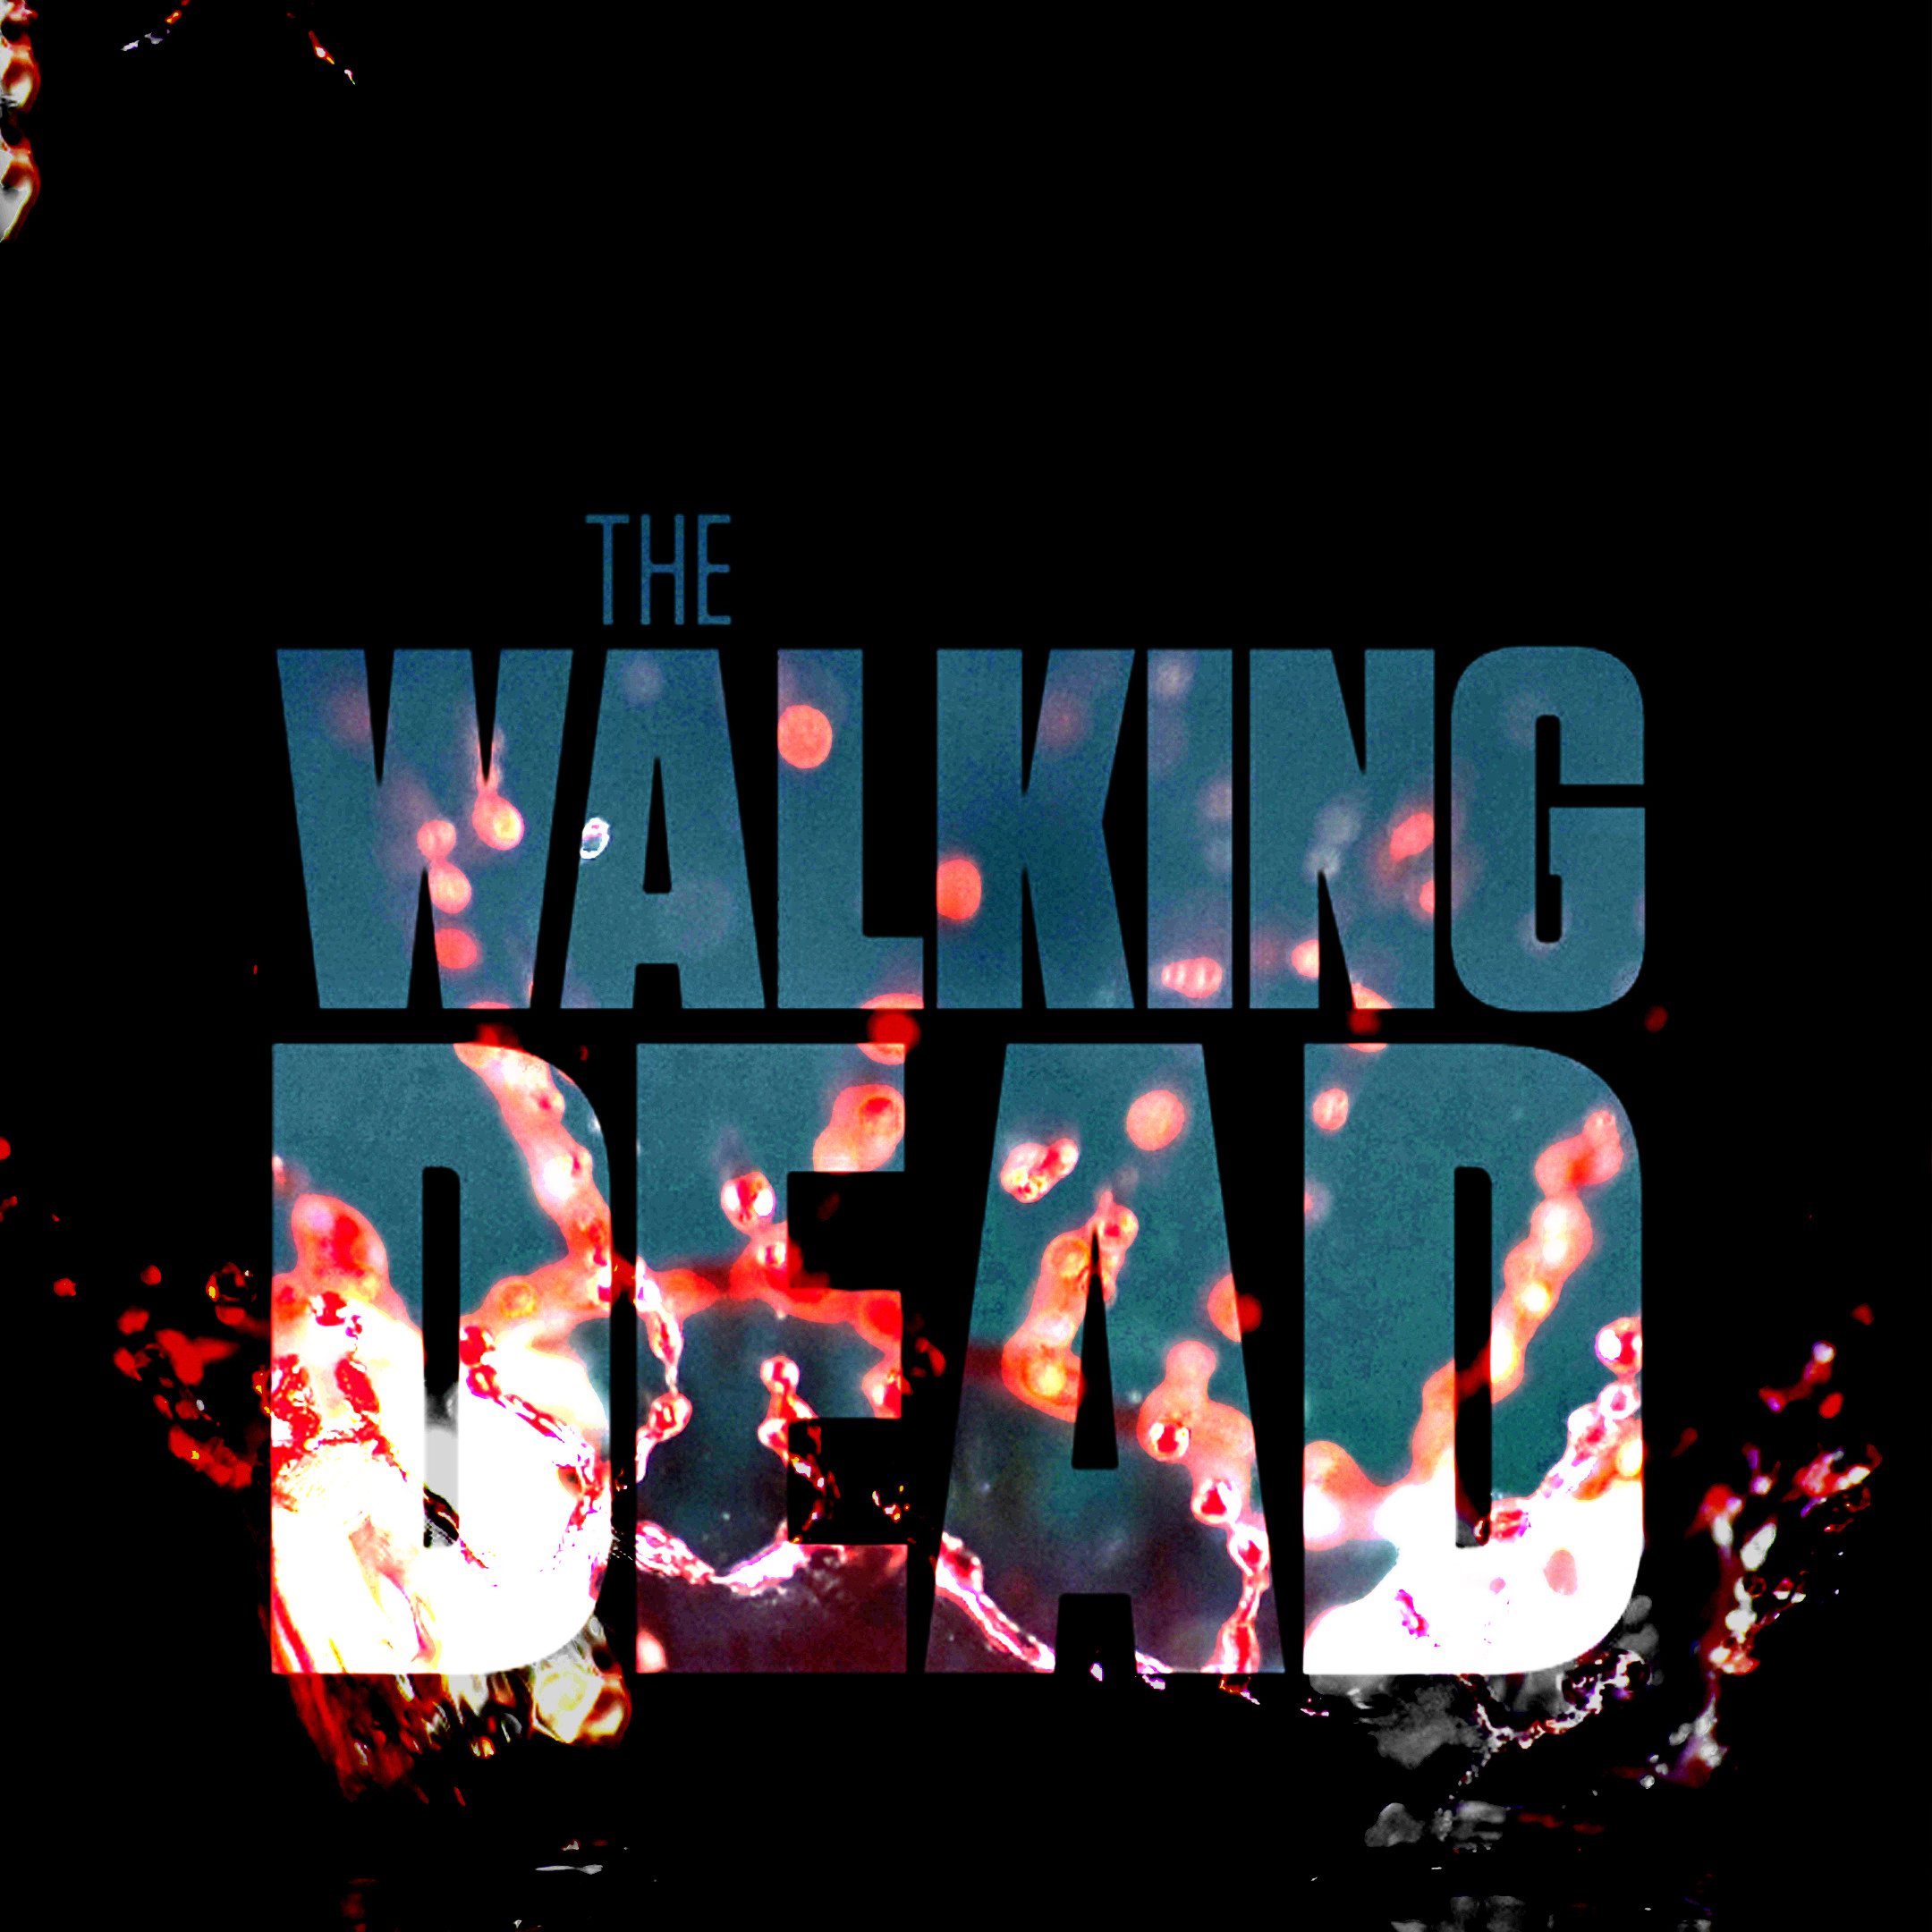 TWD 1: Bloodshed